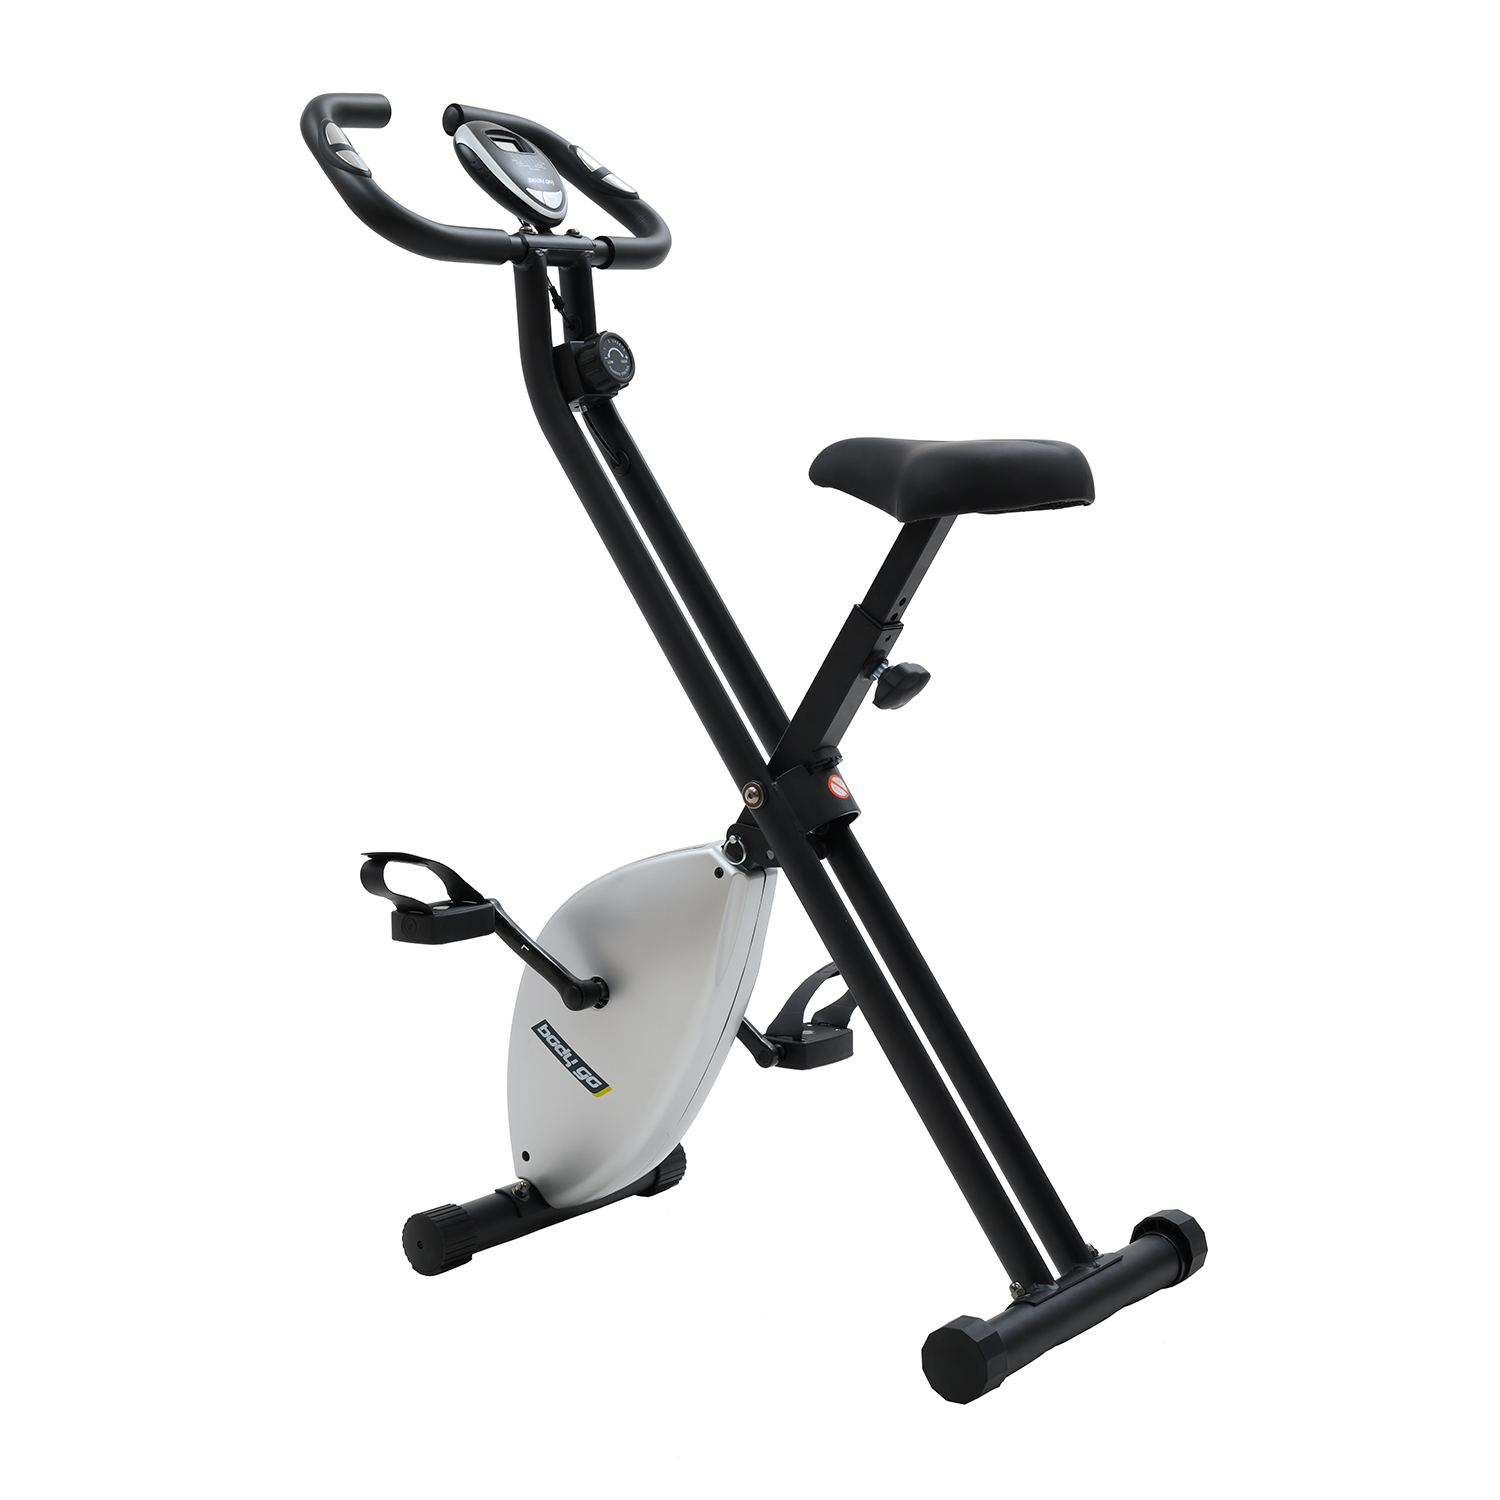 Body Go Fitness Foldaway Exercise Bike